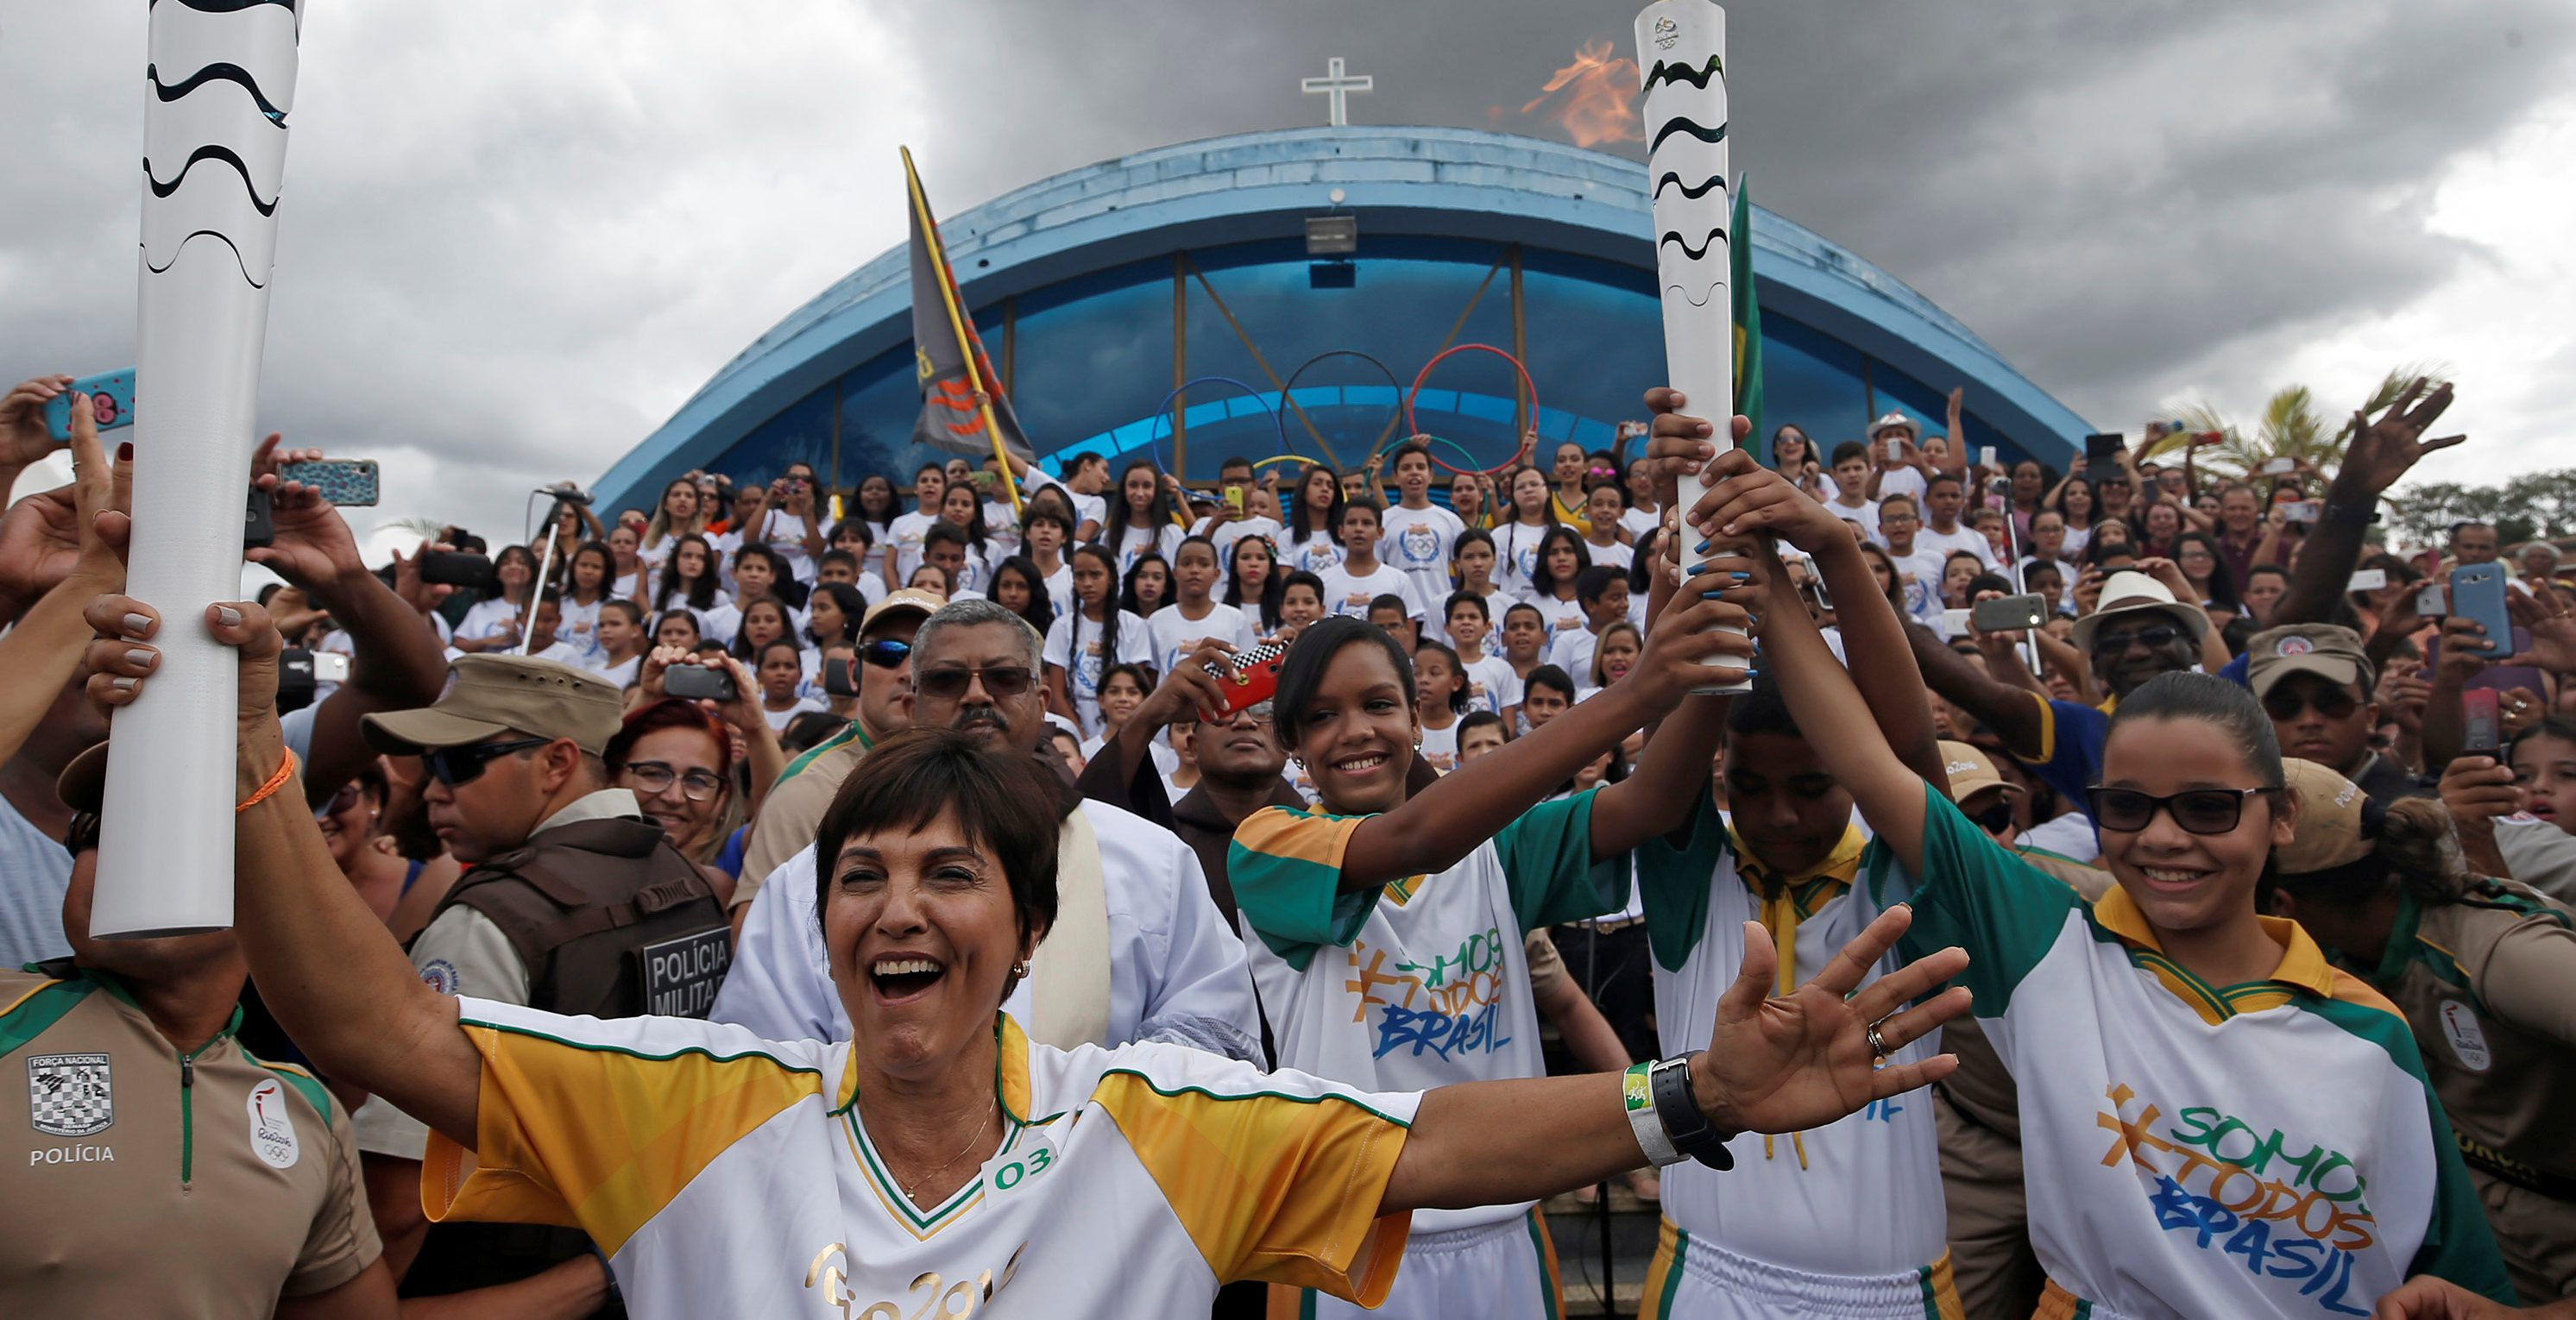 Resident Maria da Gloria takes part in the Olympic Flame torch relay in Itamaraju, Bahia state, Brazil